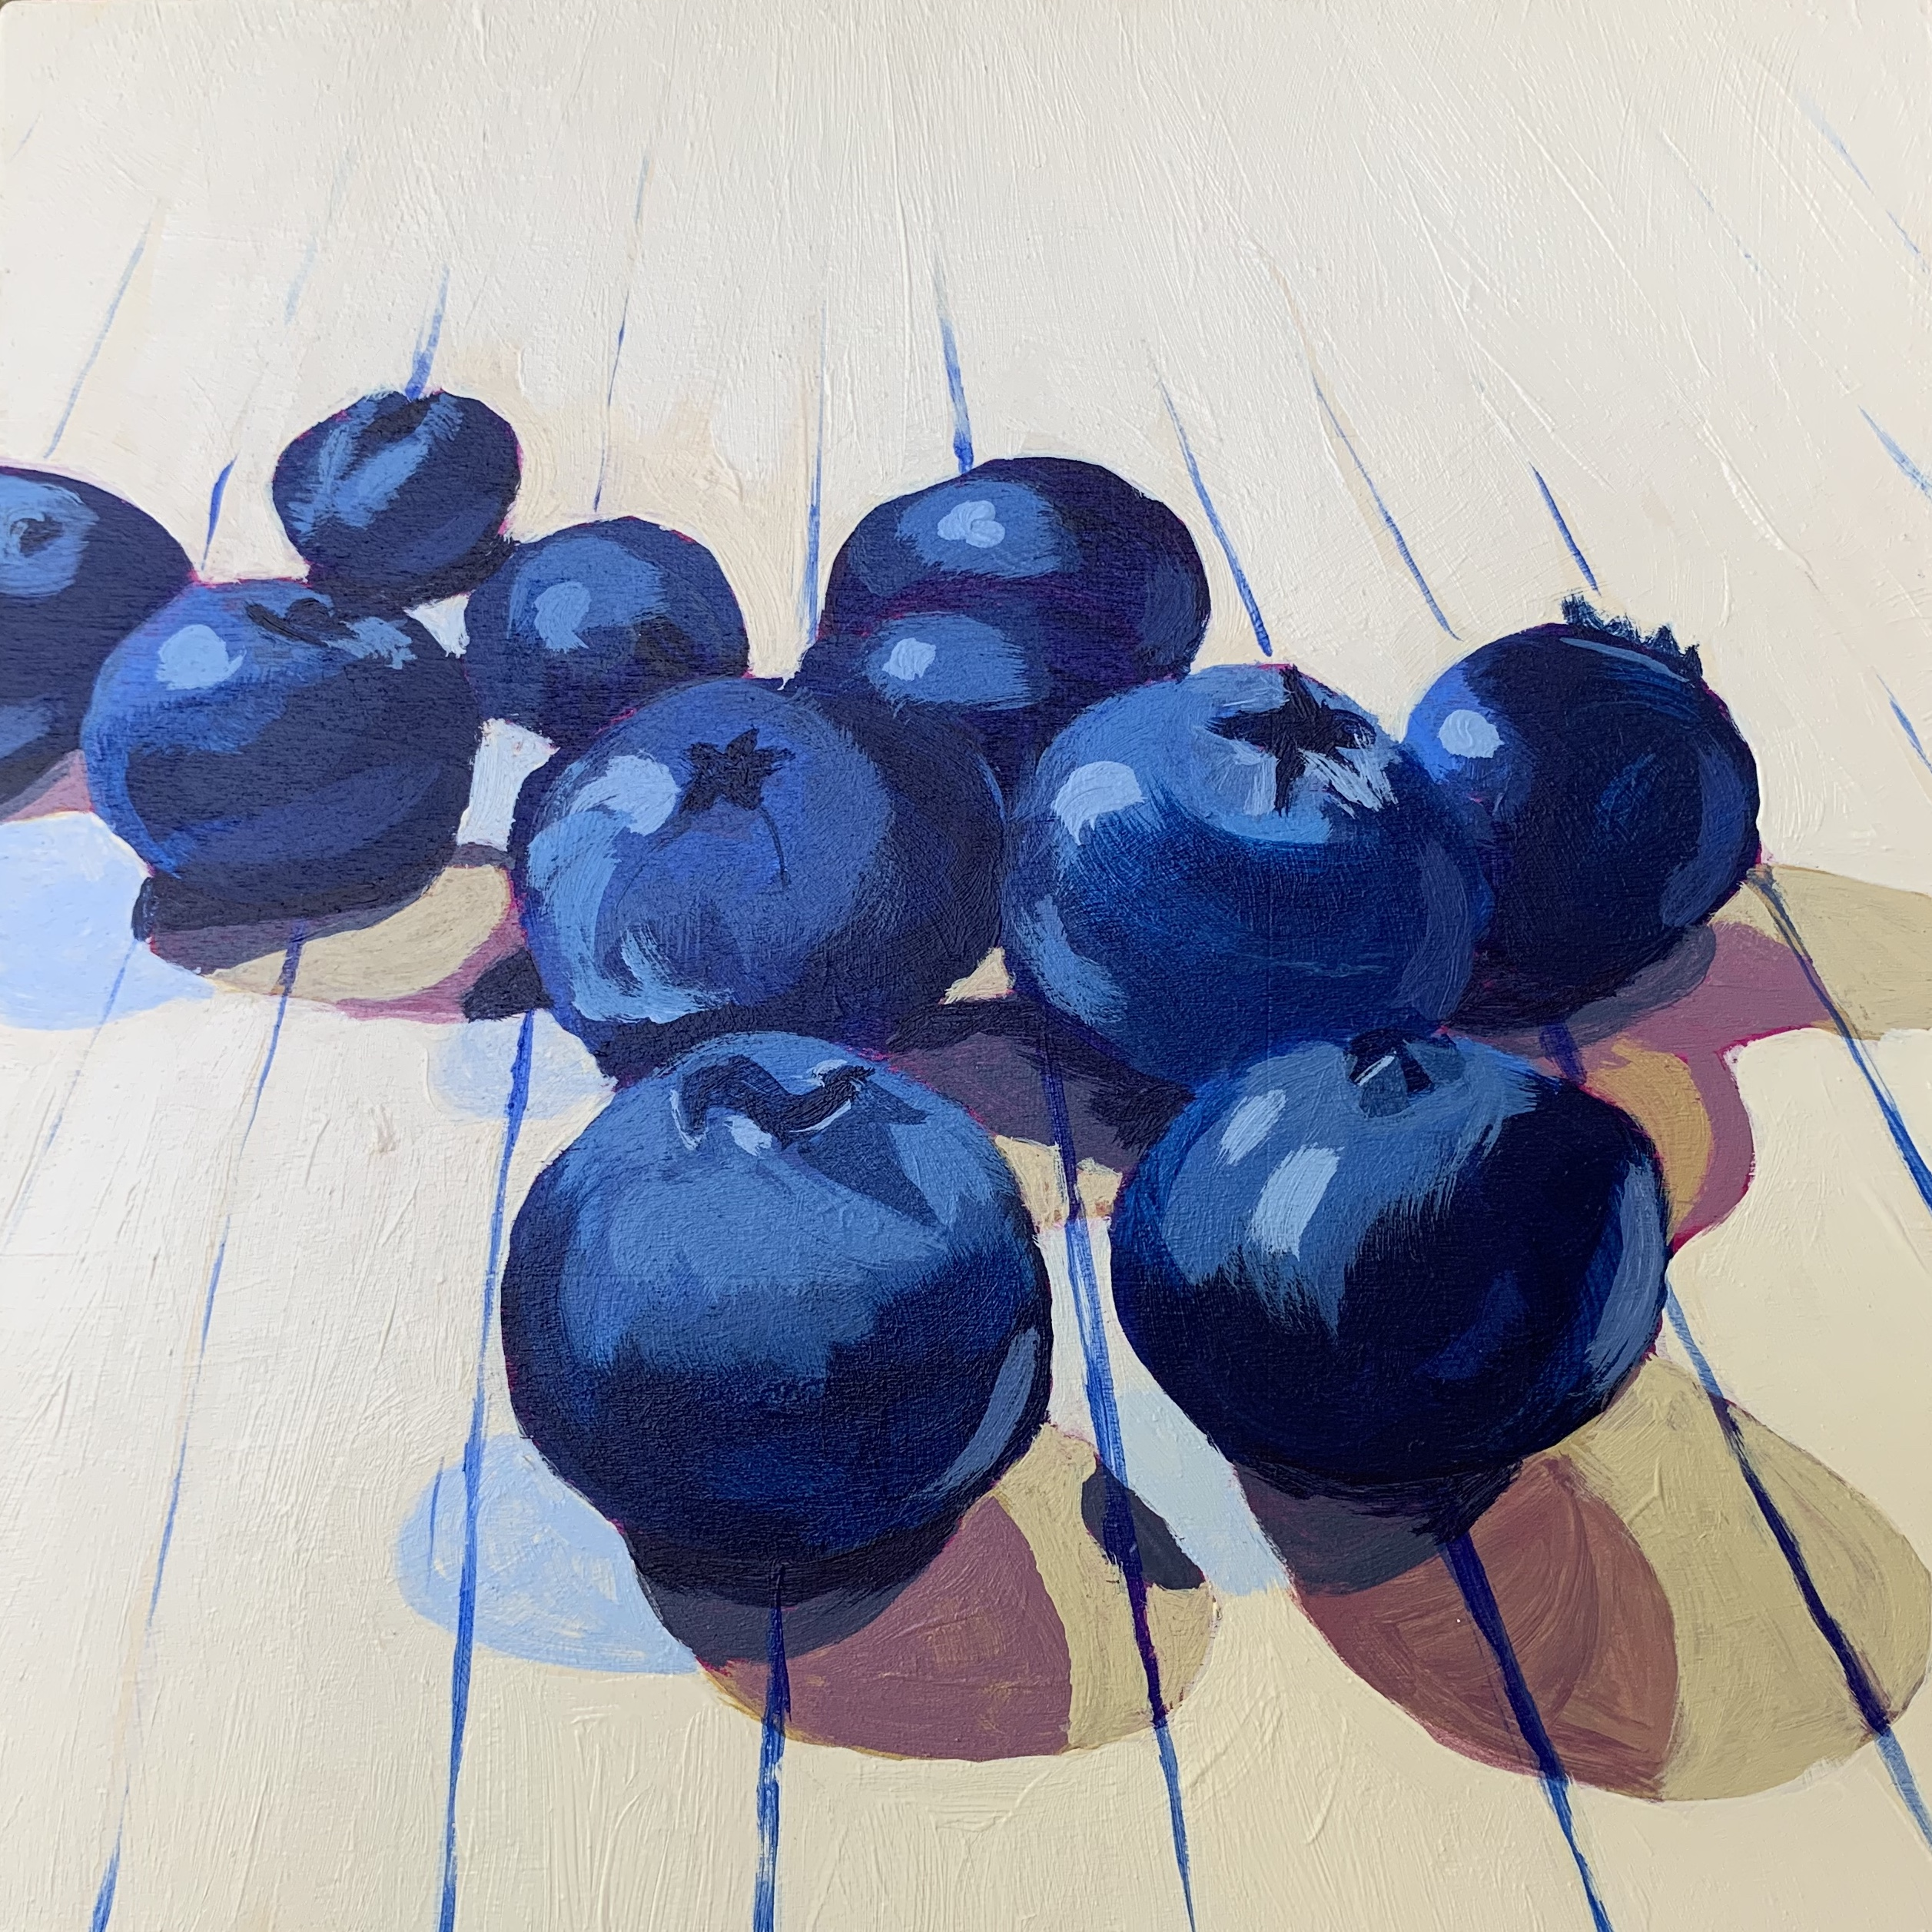 blueberries, blueberry painting, Austin artist, Leigh Ann Torres, original artwork, acrylic painting